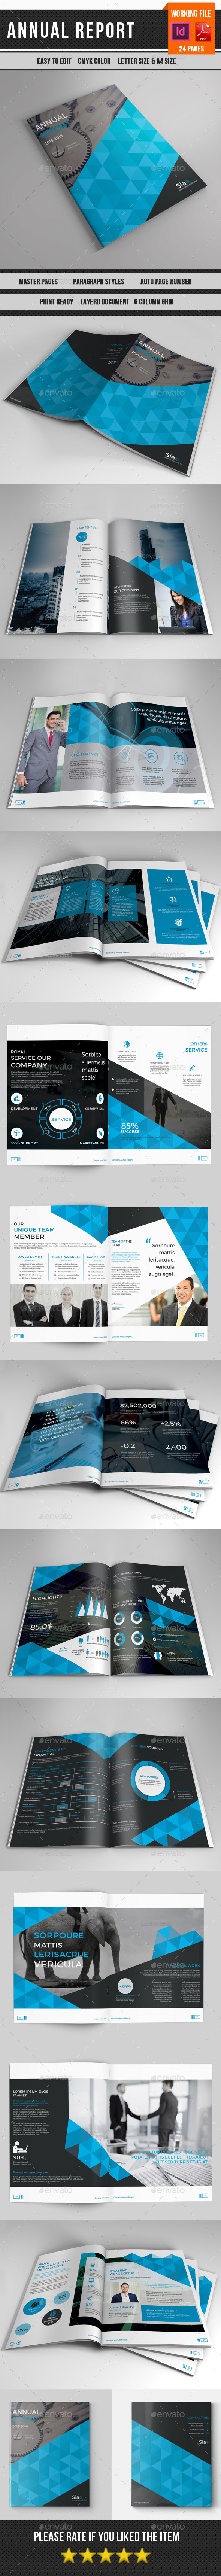 Annual Report | Indesign Template-V354 - Corporate Brochures